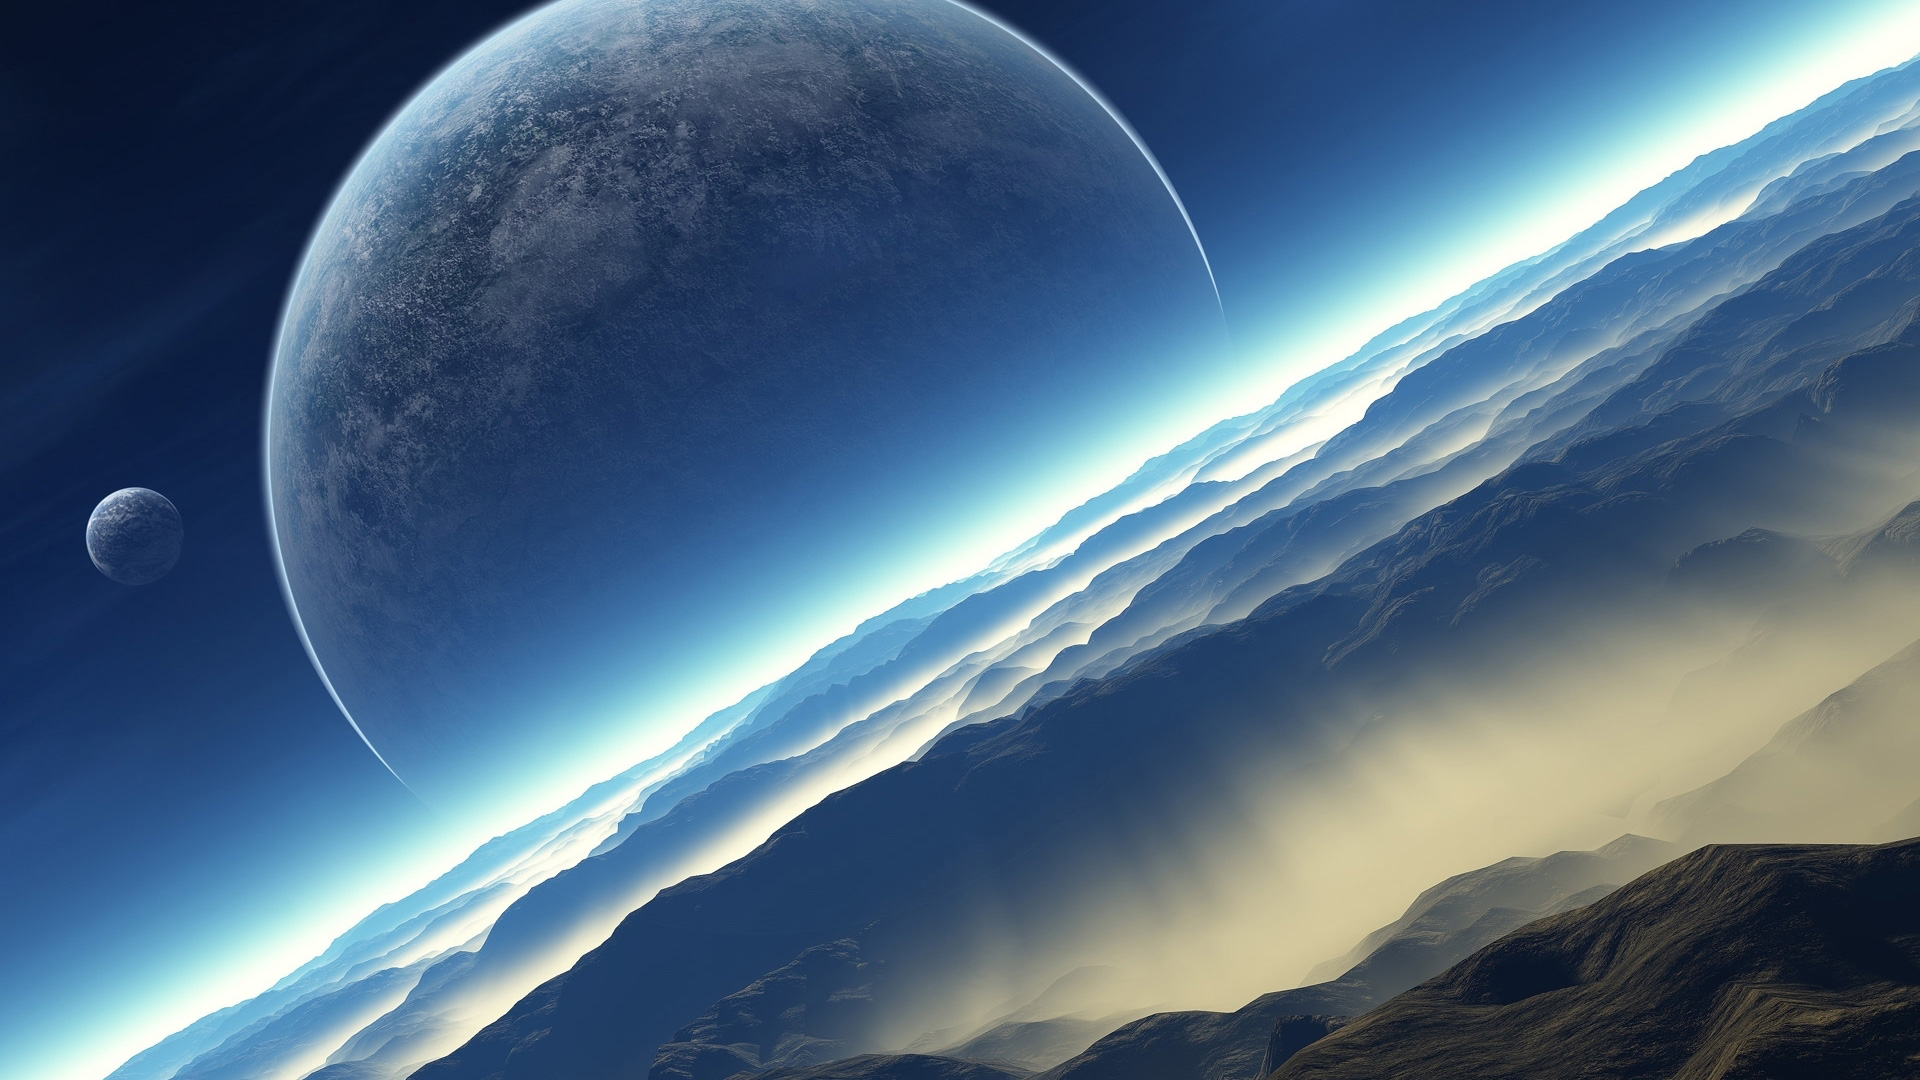 Download High Definition Space Wallpaper FULL HD 1080p 1920x1080